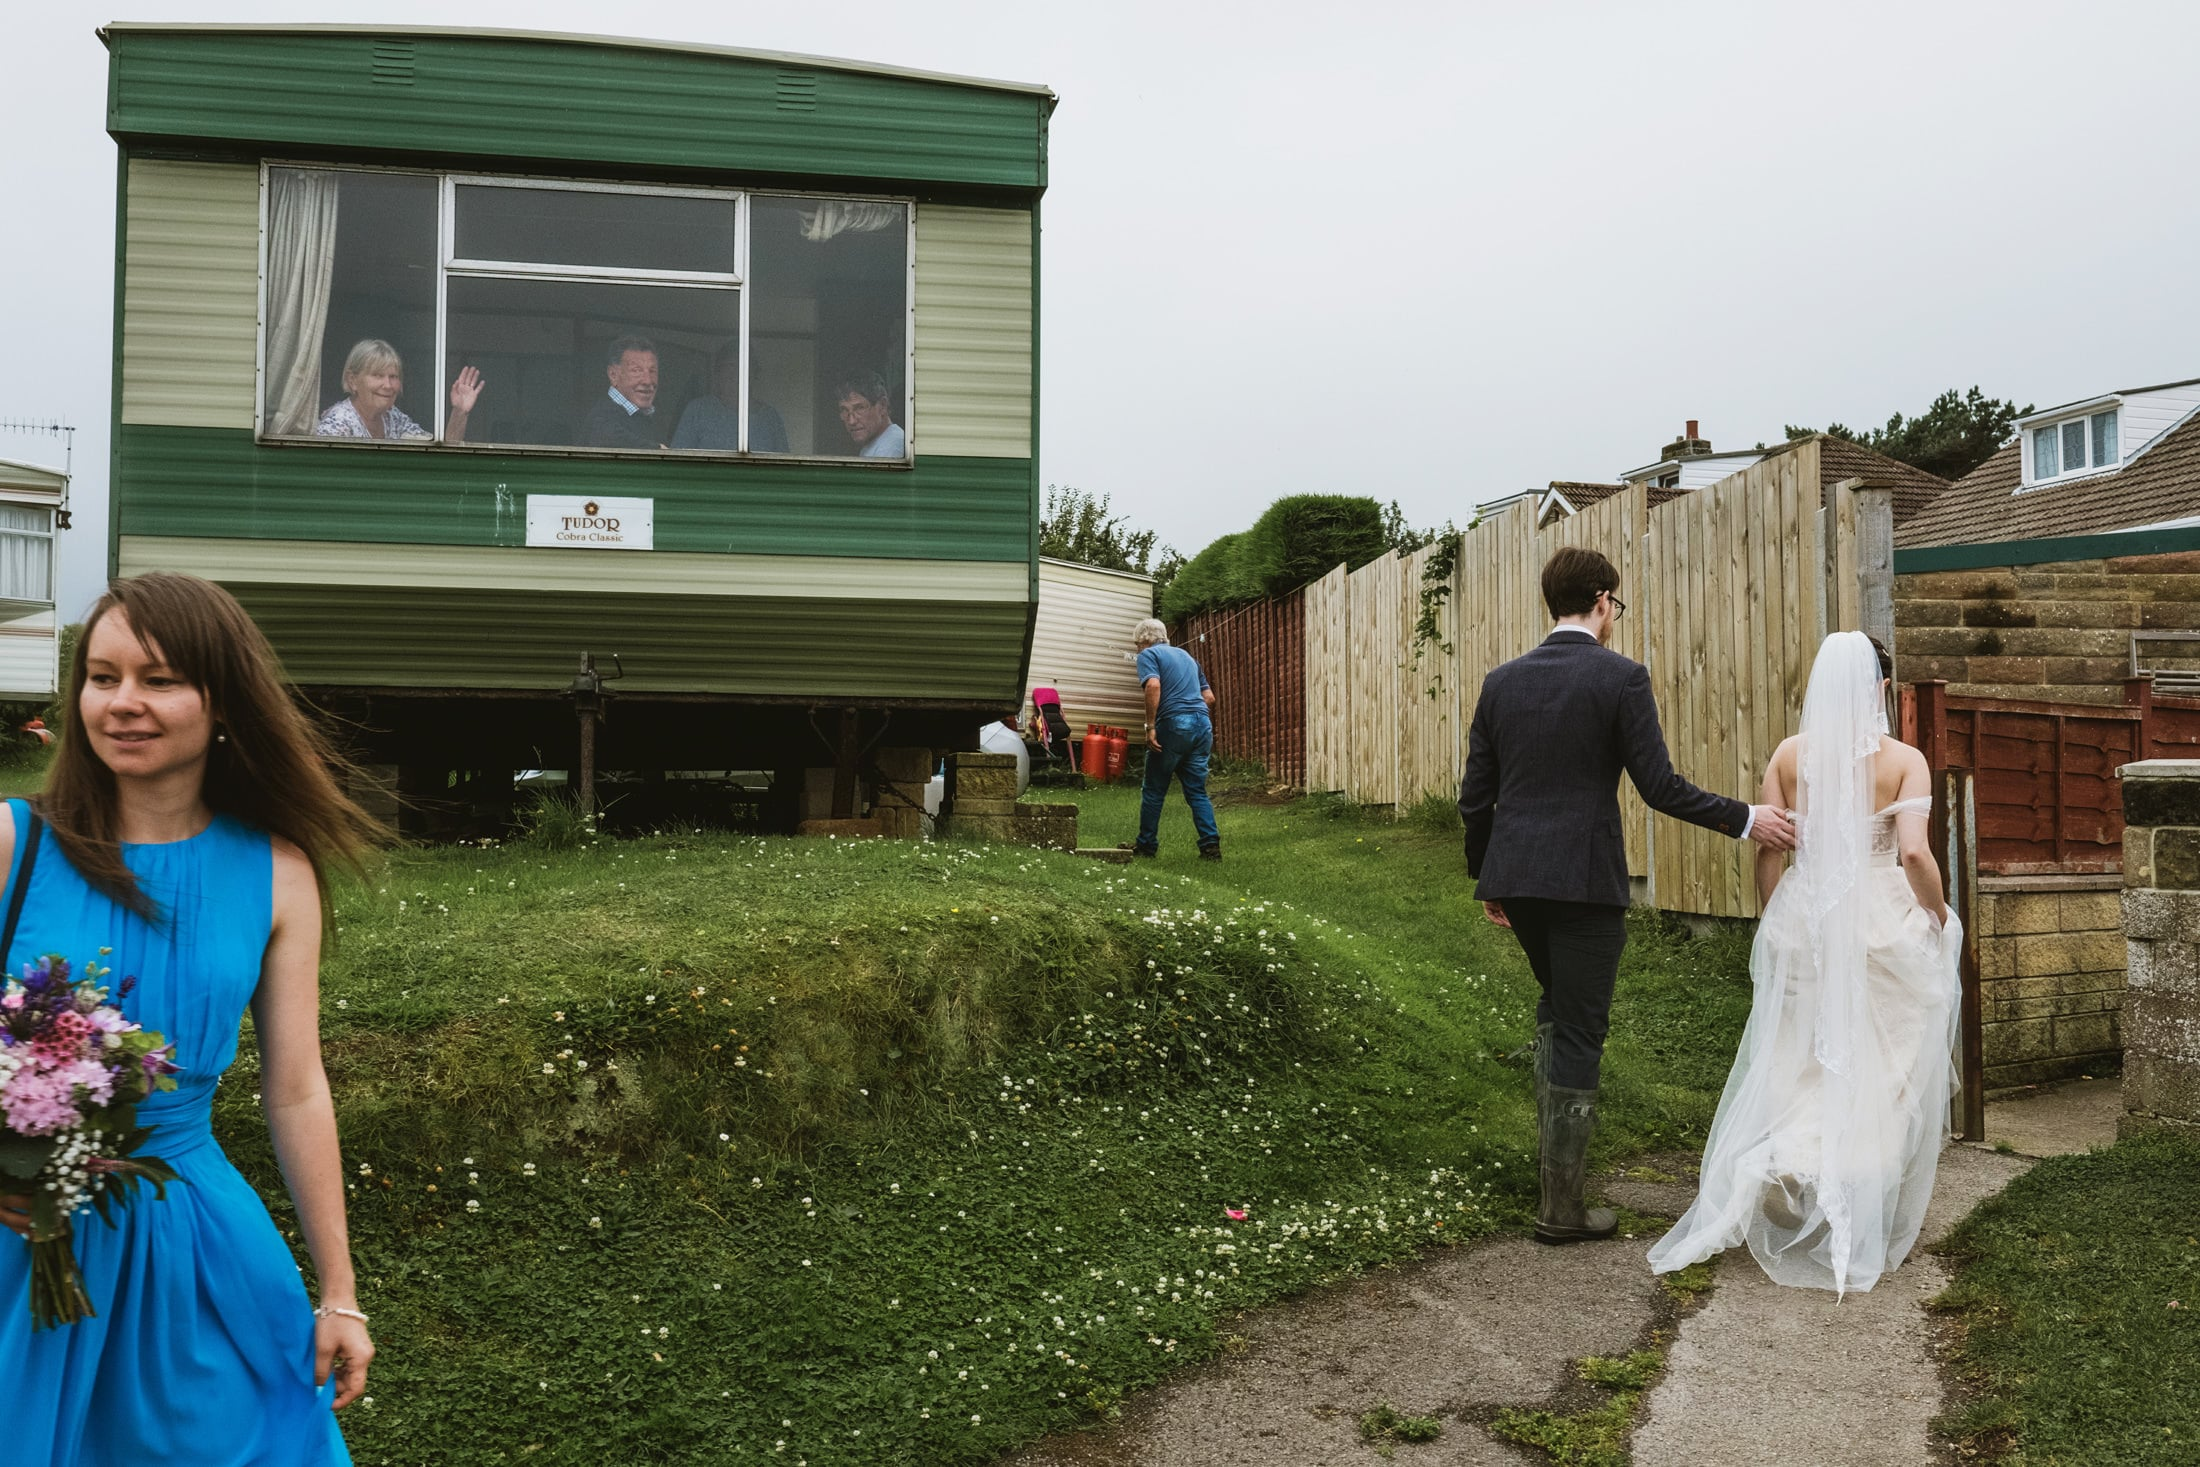 Bride and groom passing a caravan, people waving